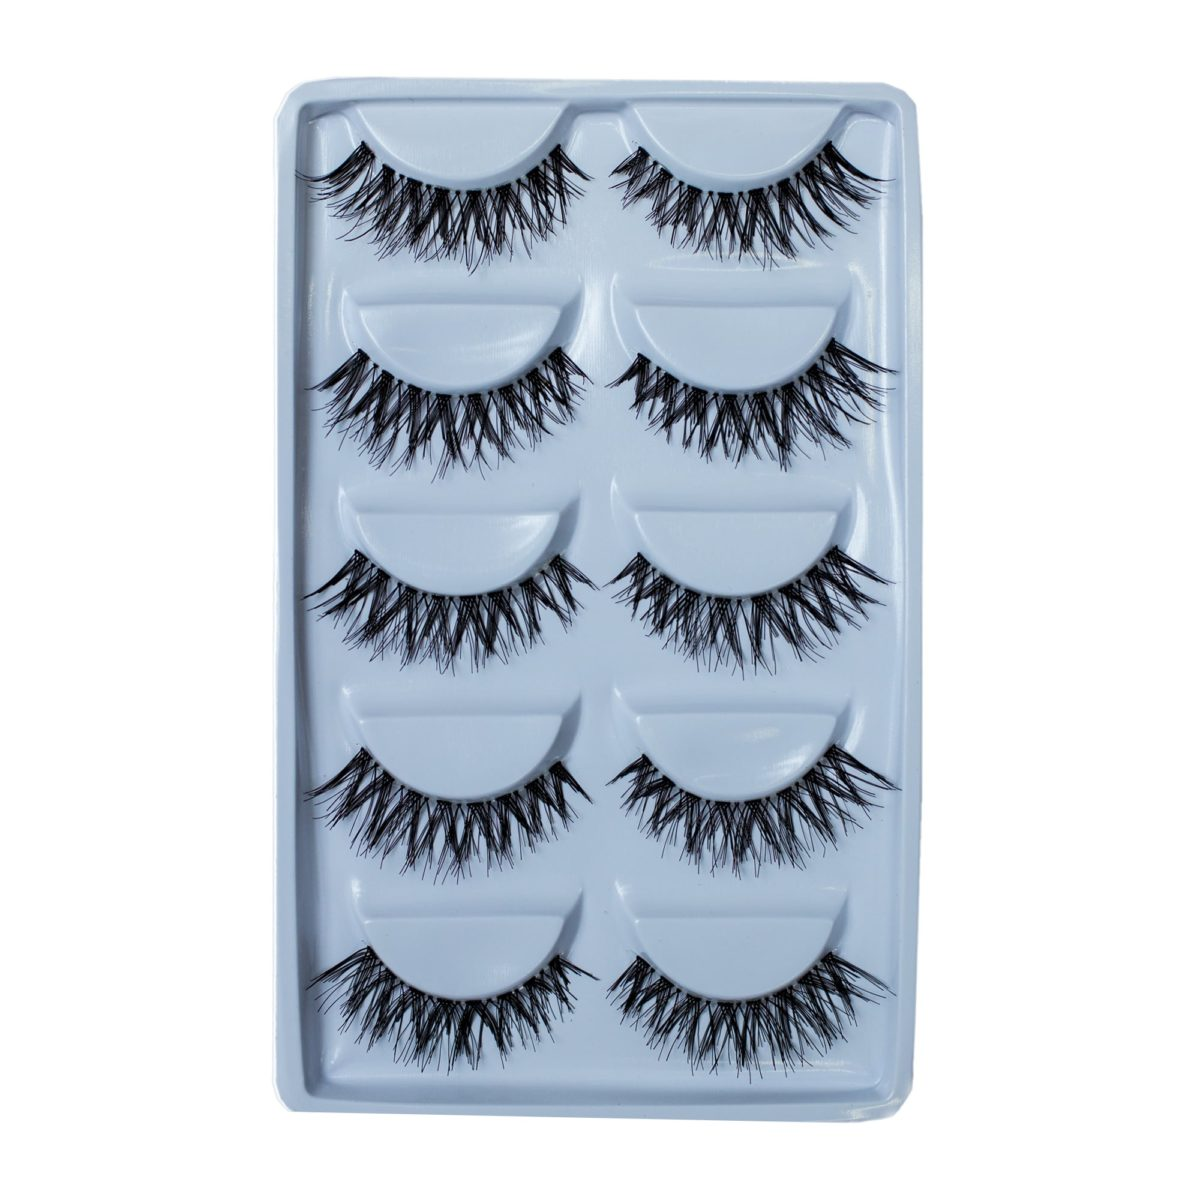 5packlashes